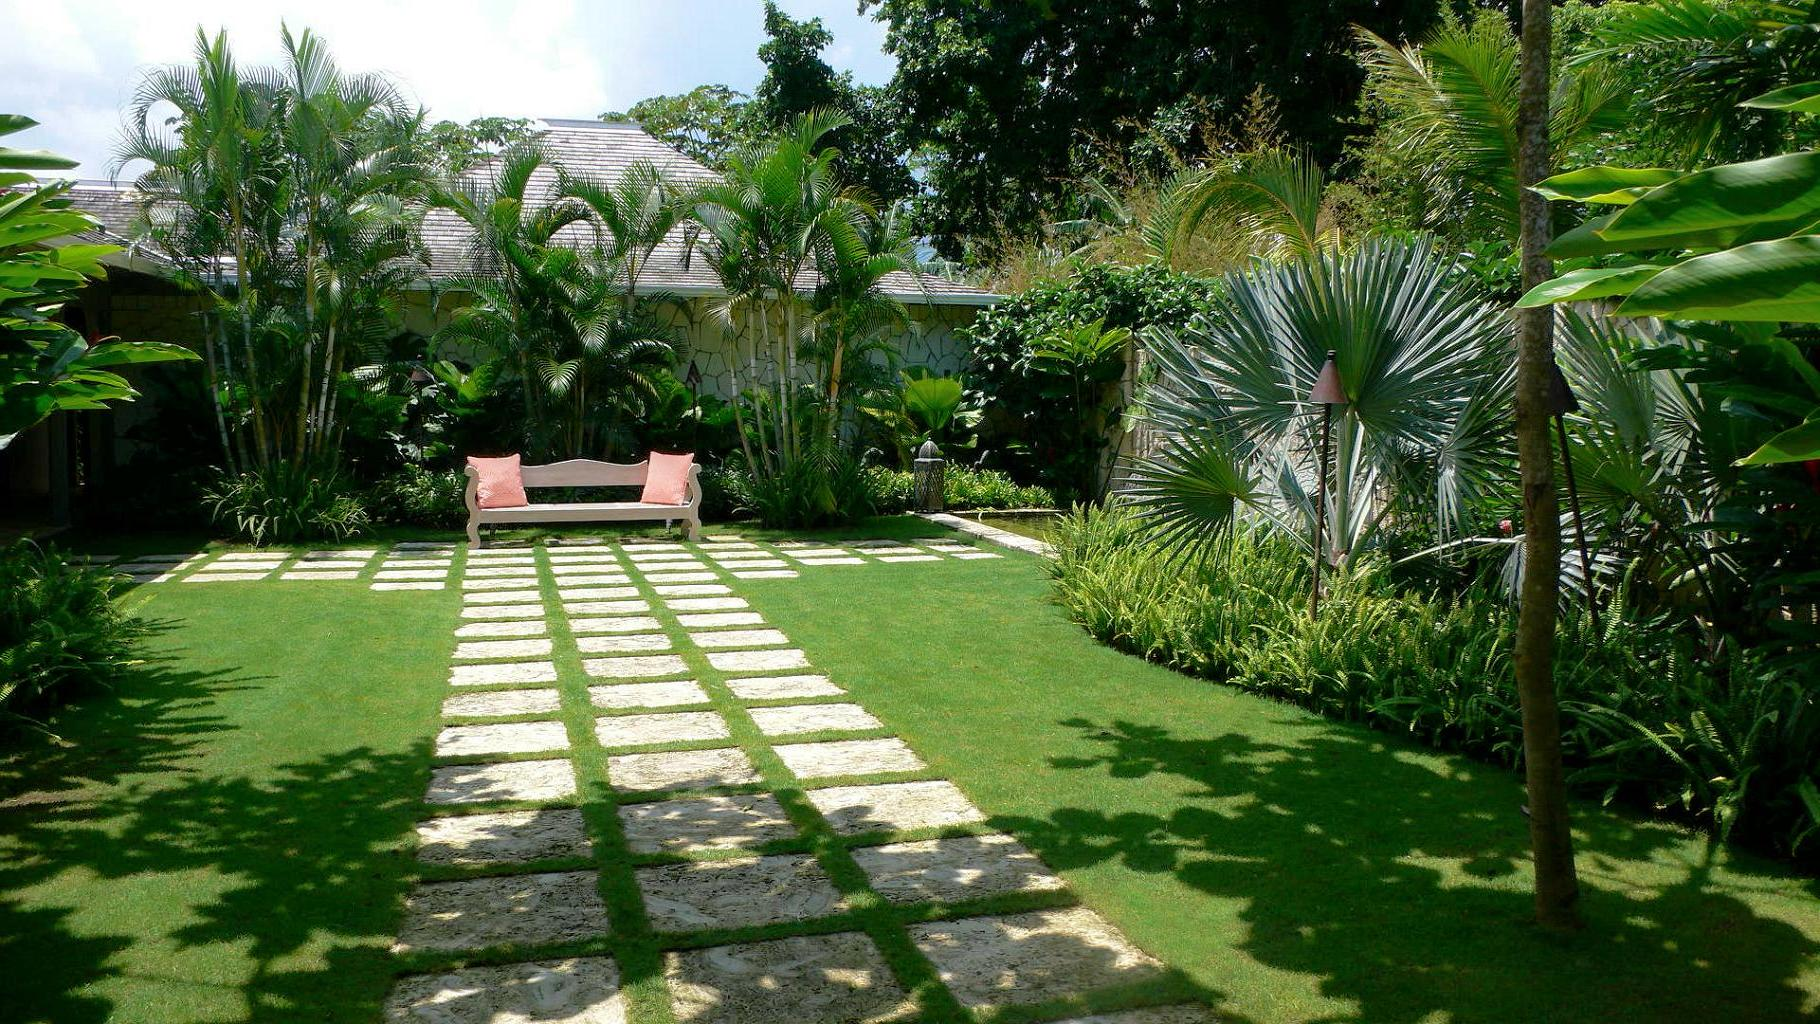 Tropical garden design landscaping in brisbane for Best home garden design